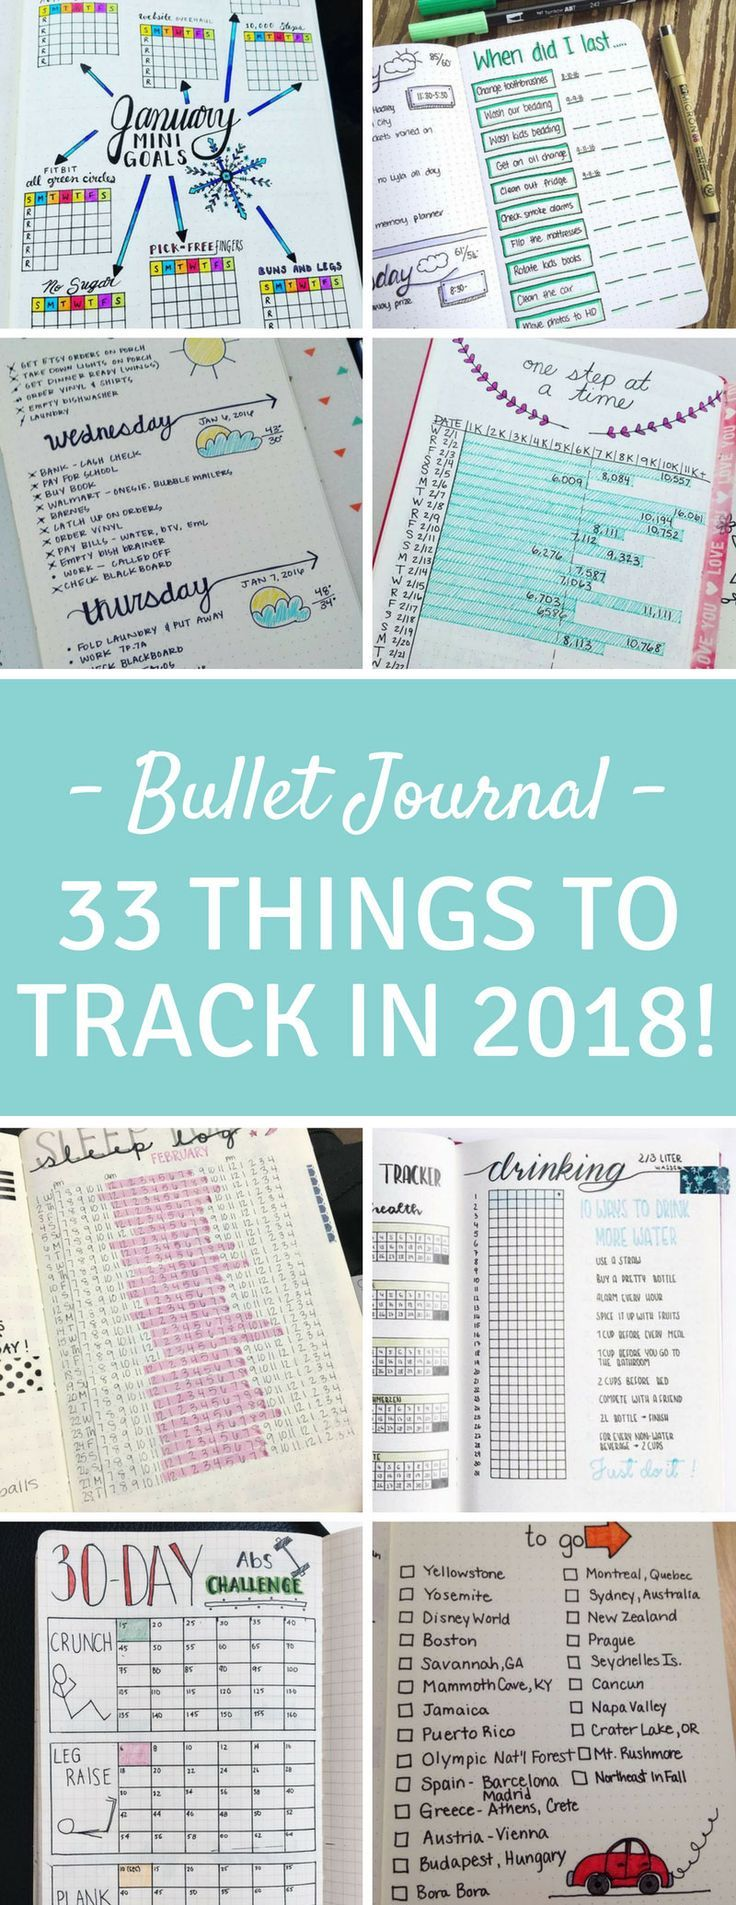 Bullet Journal Tracking Spreads - So many brilliant spreads here from tracking weight loss and water to chores and car maintenance!